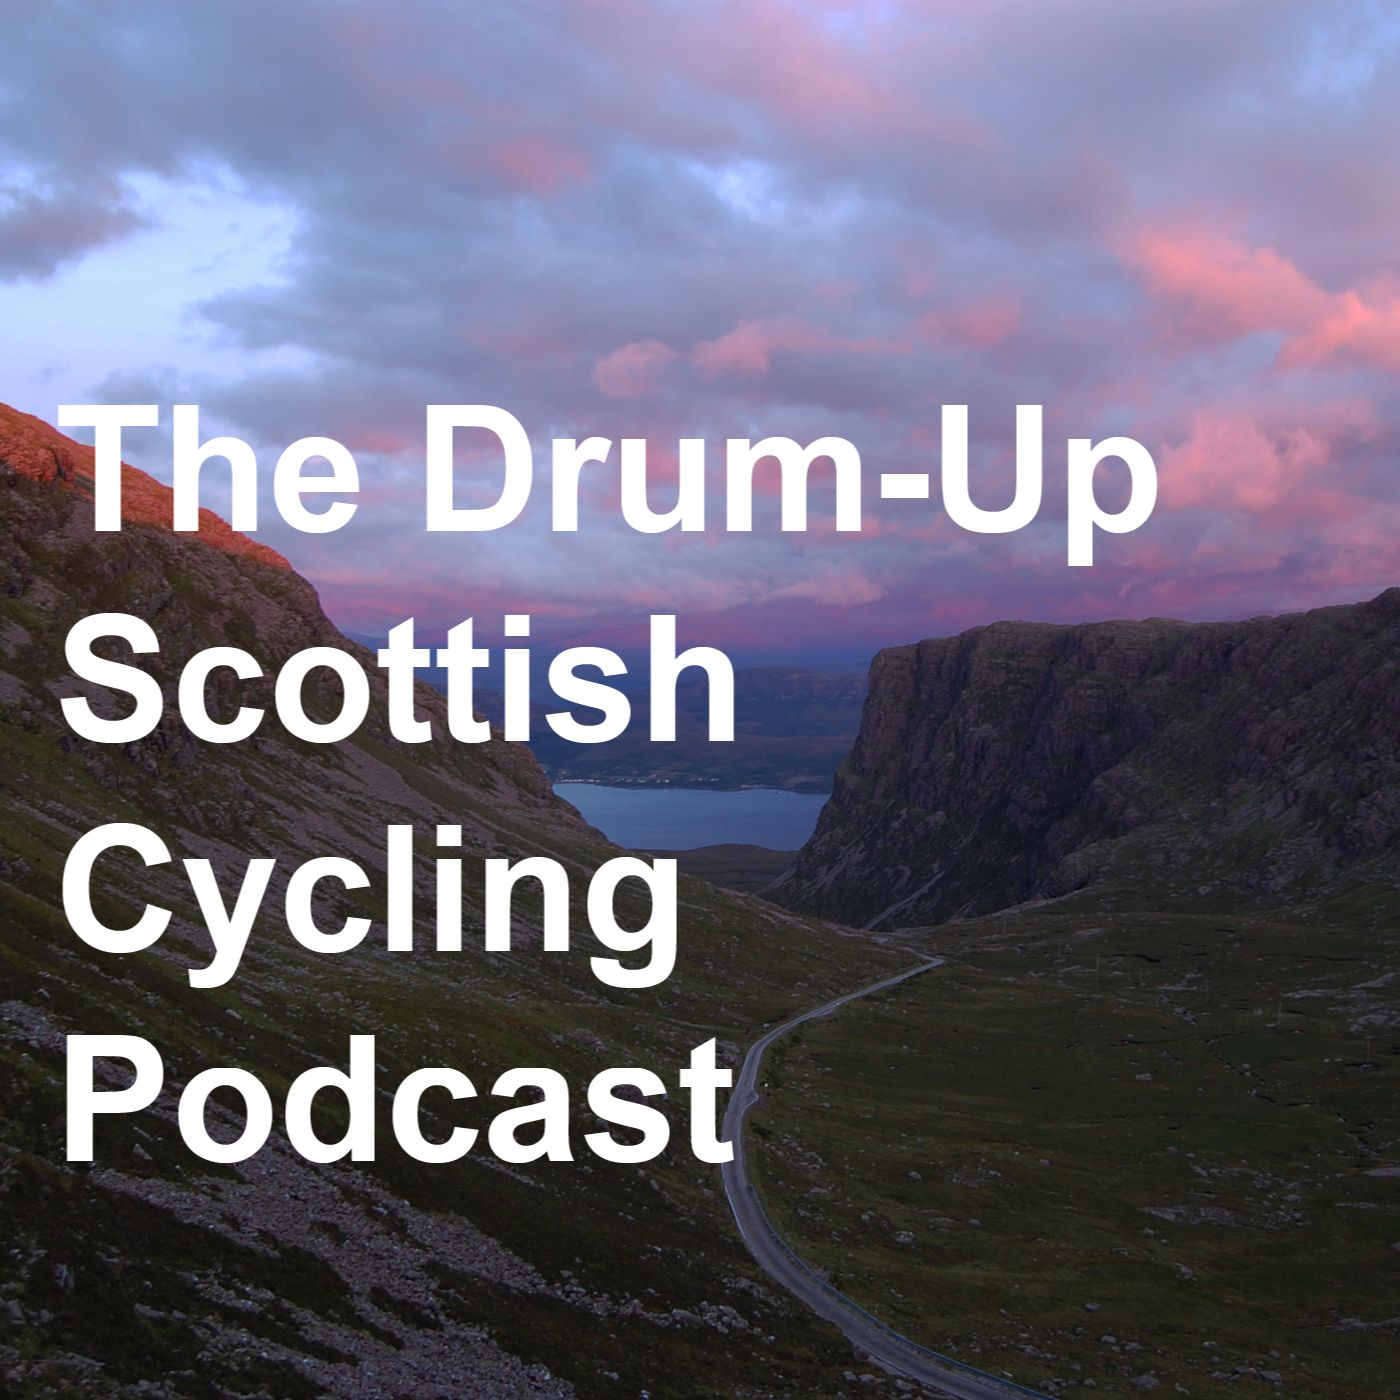 The Drum Up Scottish cycling podcast